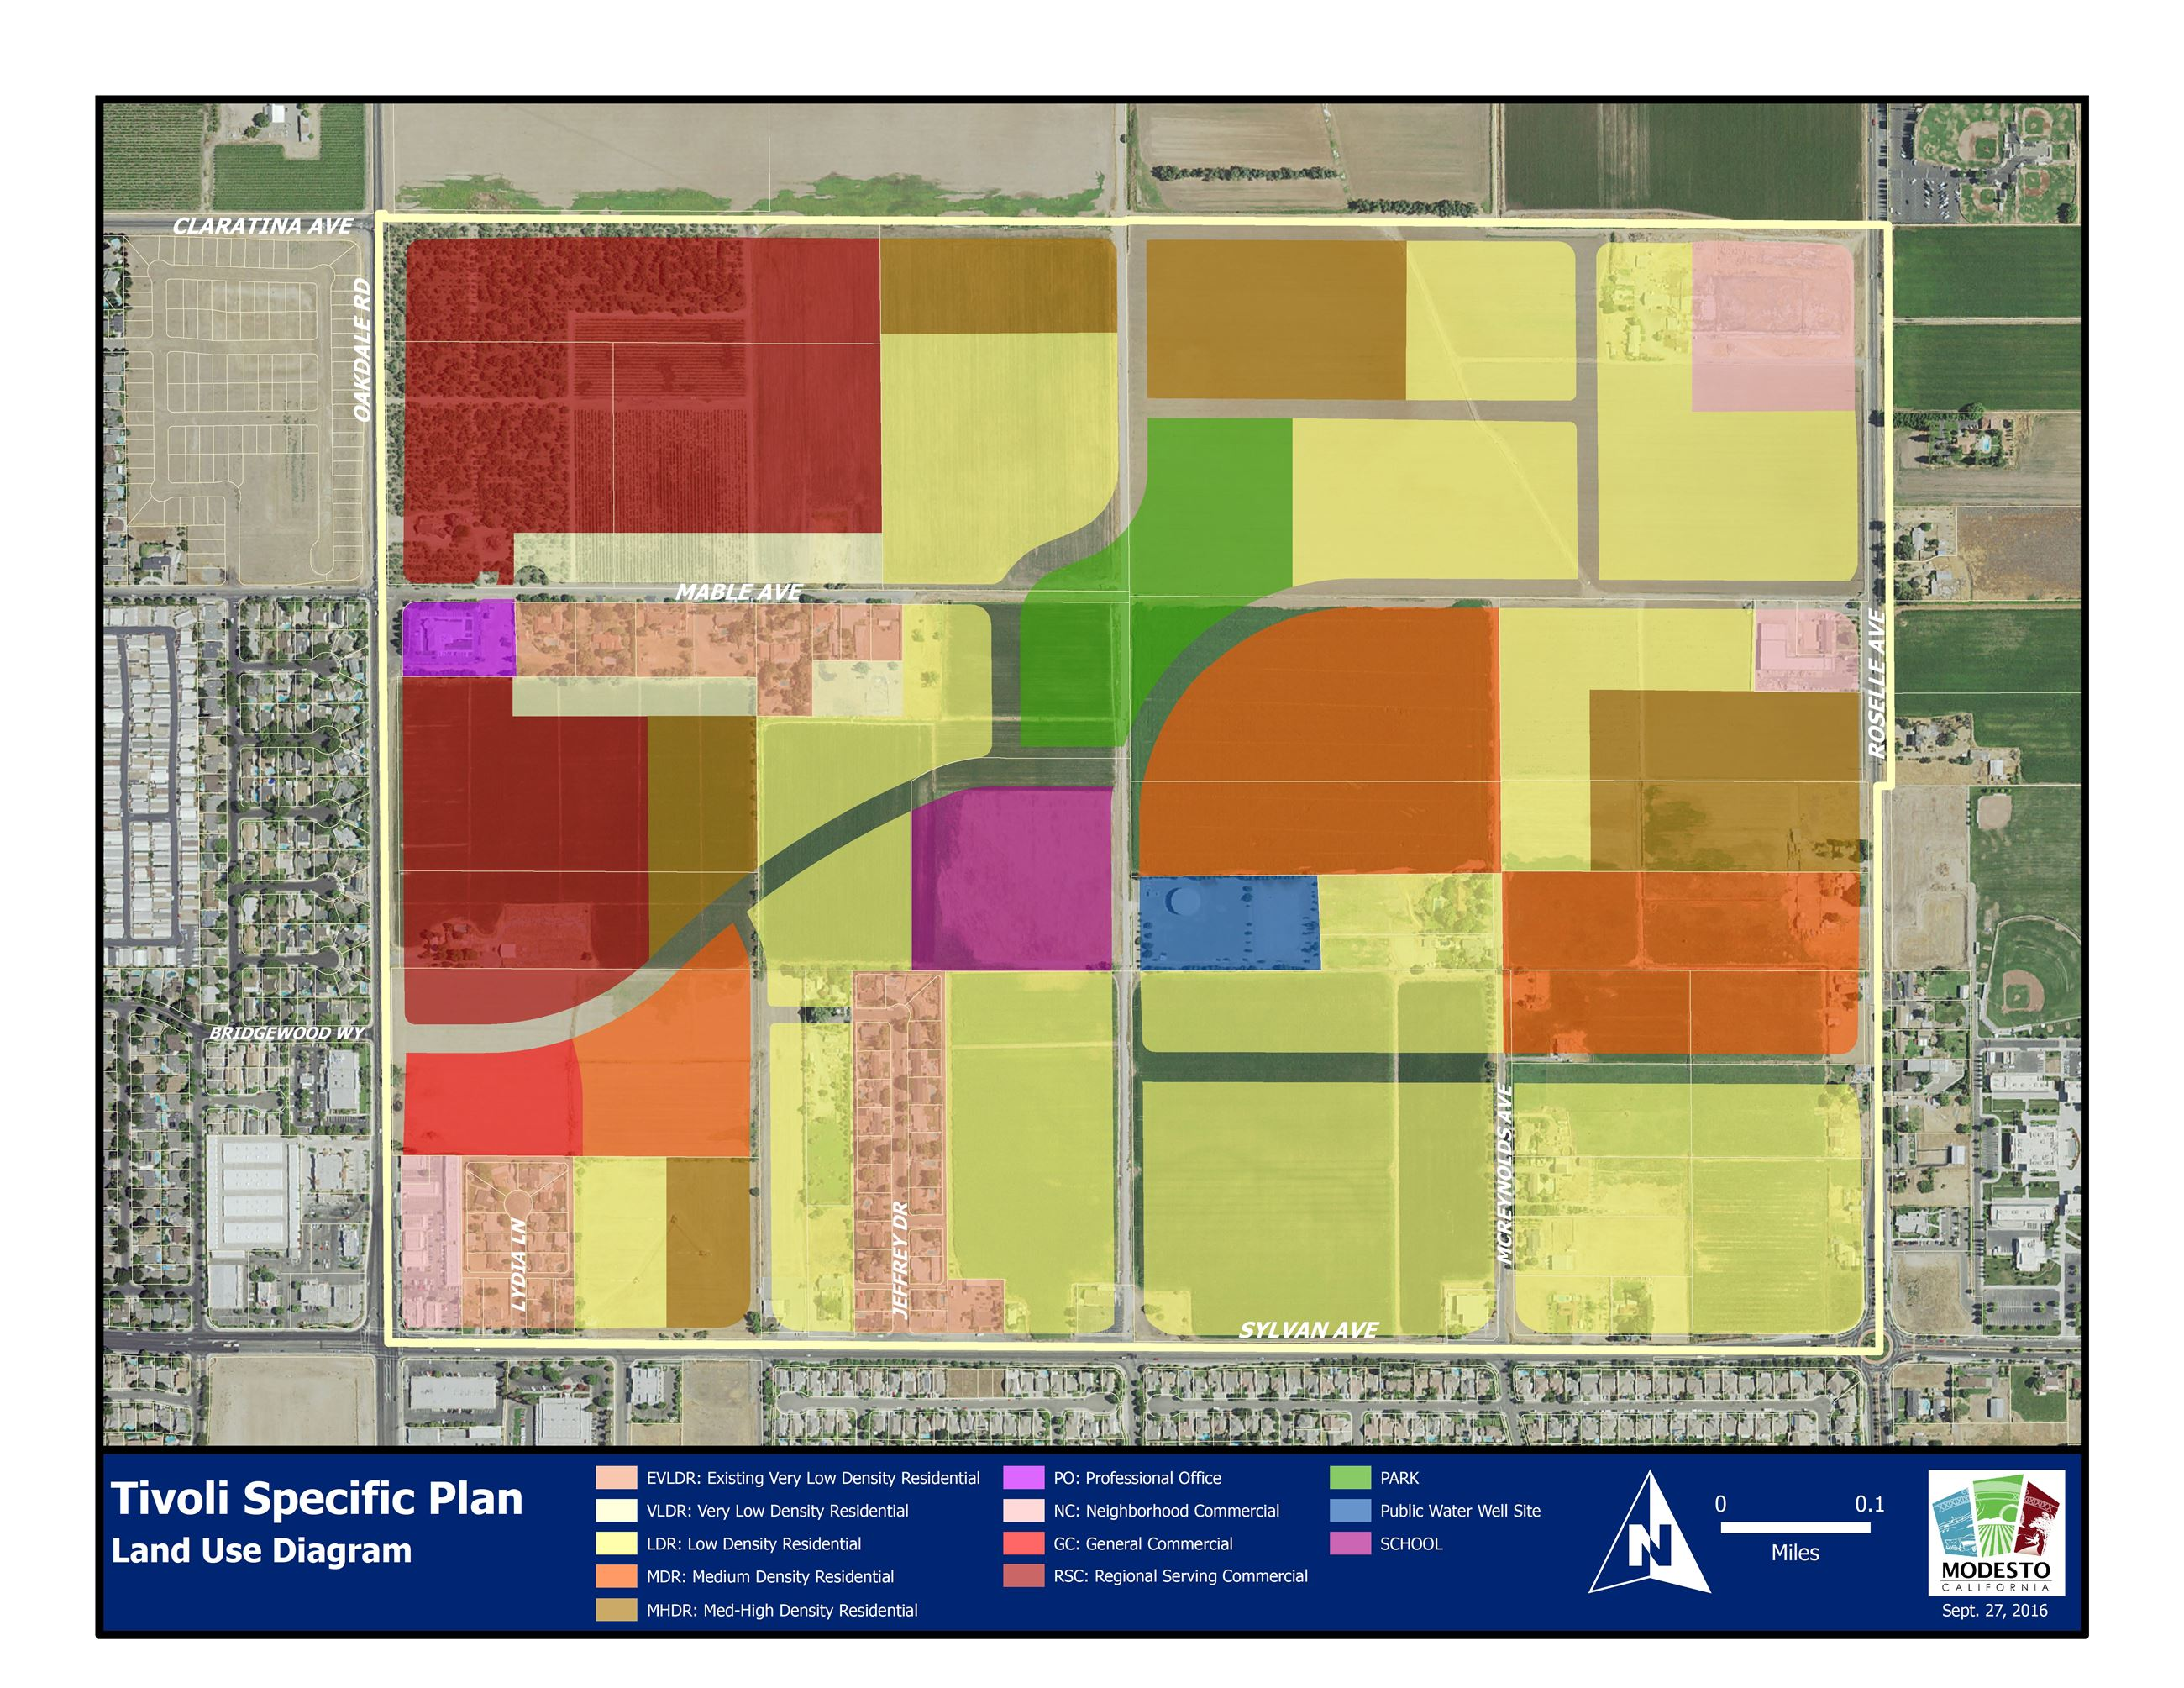 Tivoli Specific Plan Land Use Diagram